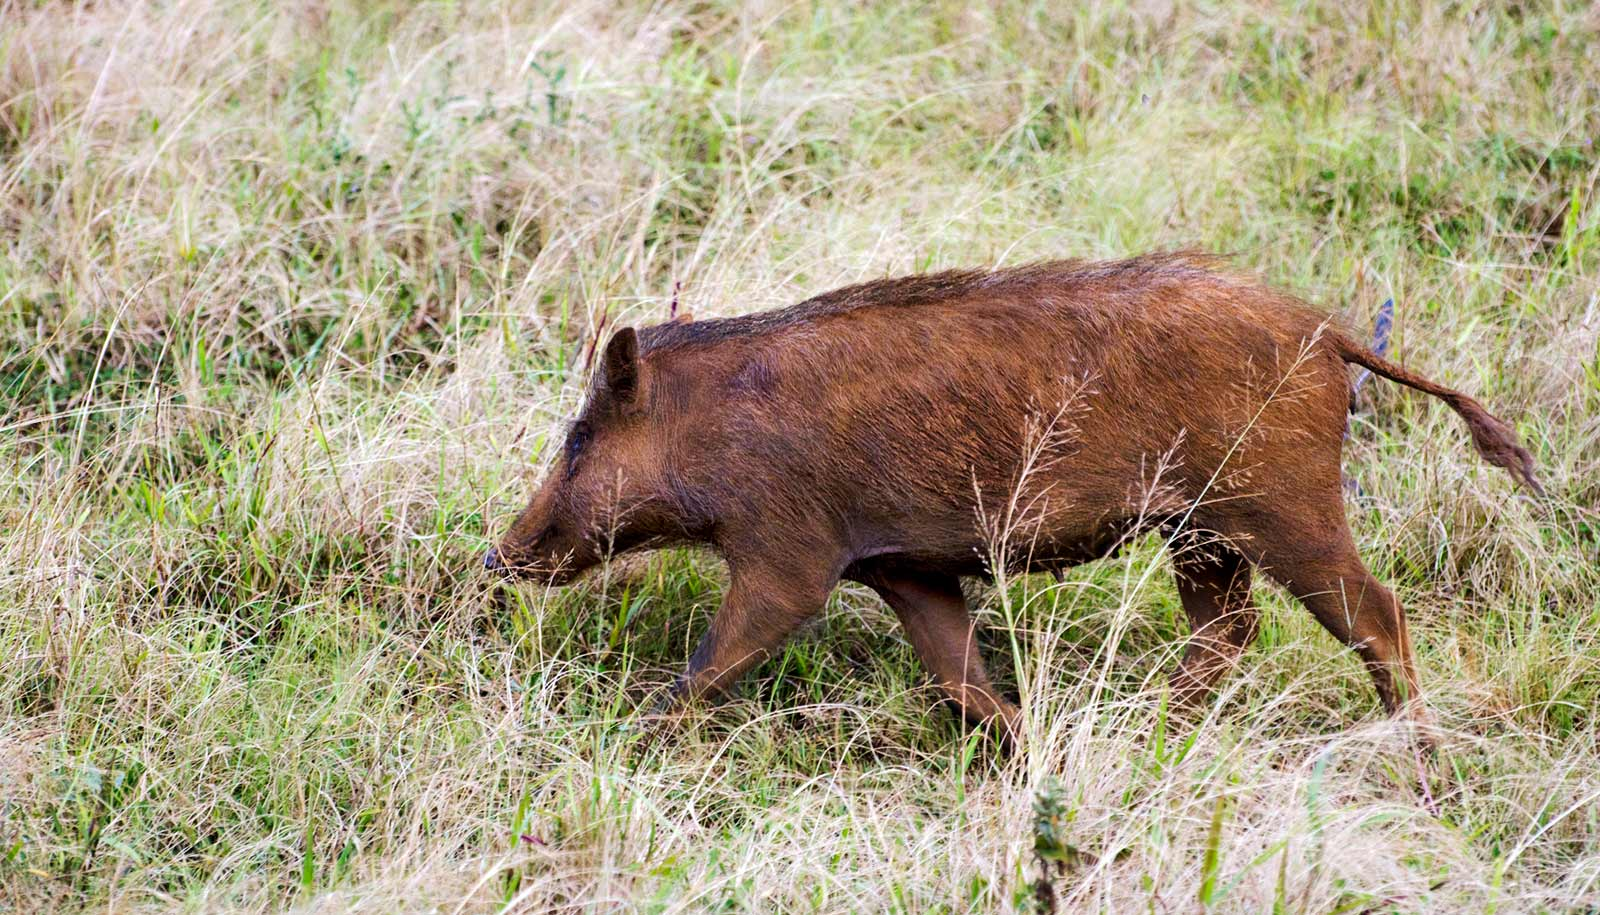 Hawaii's feral pigs have history in their genes - Futurity